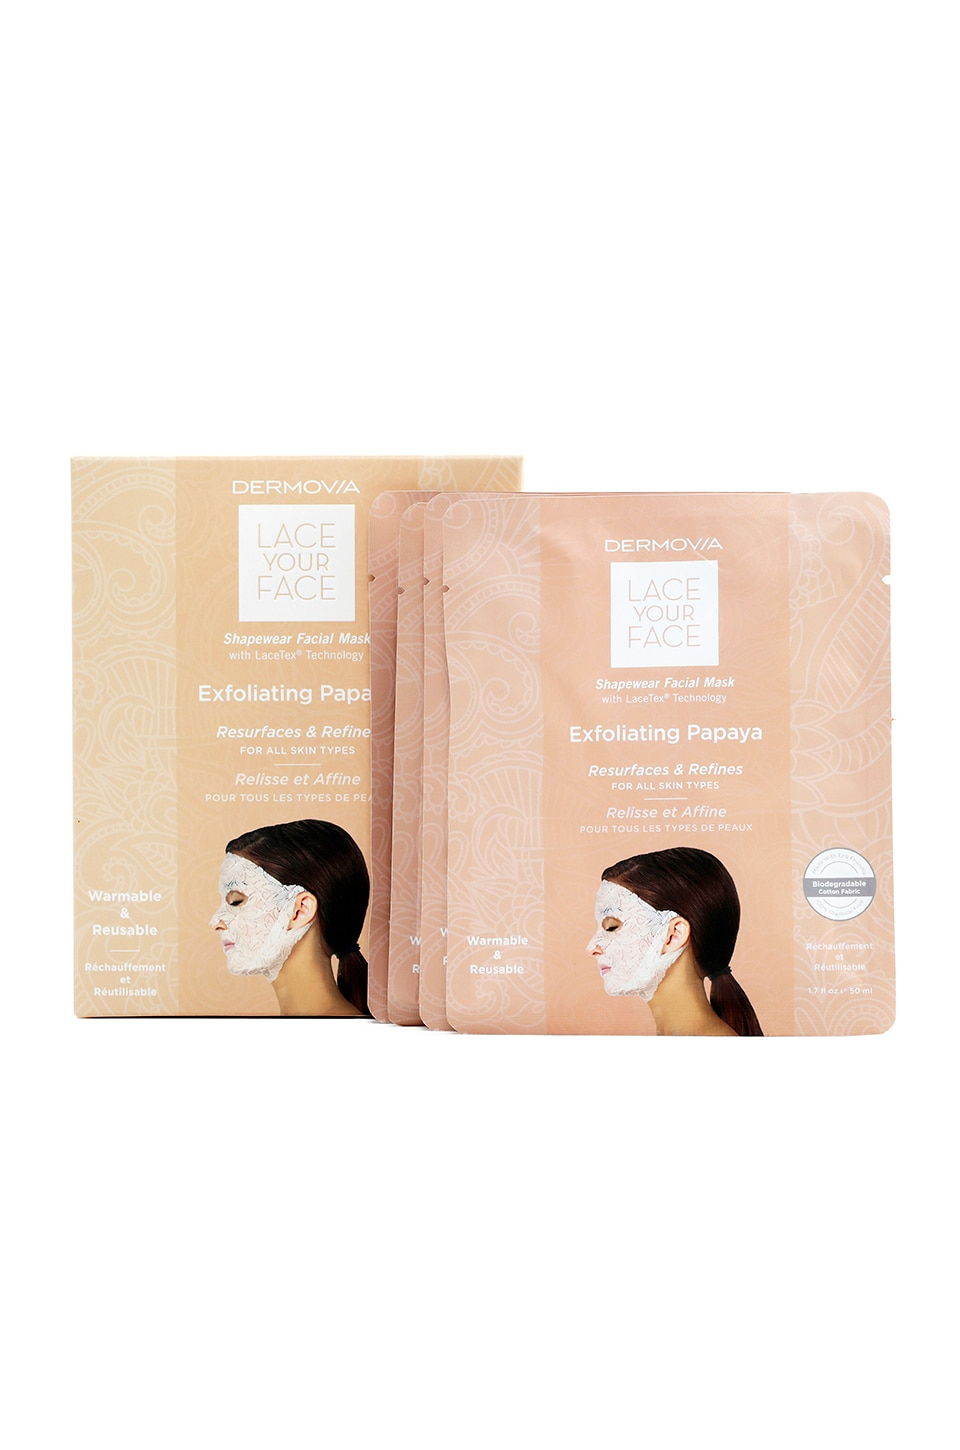 Dermovia Exfoliating Papaya Lace Your Face Mask 4 Pack